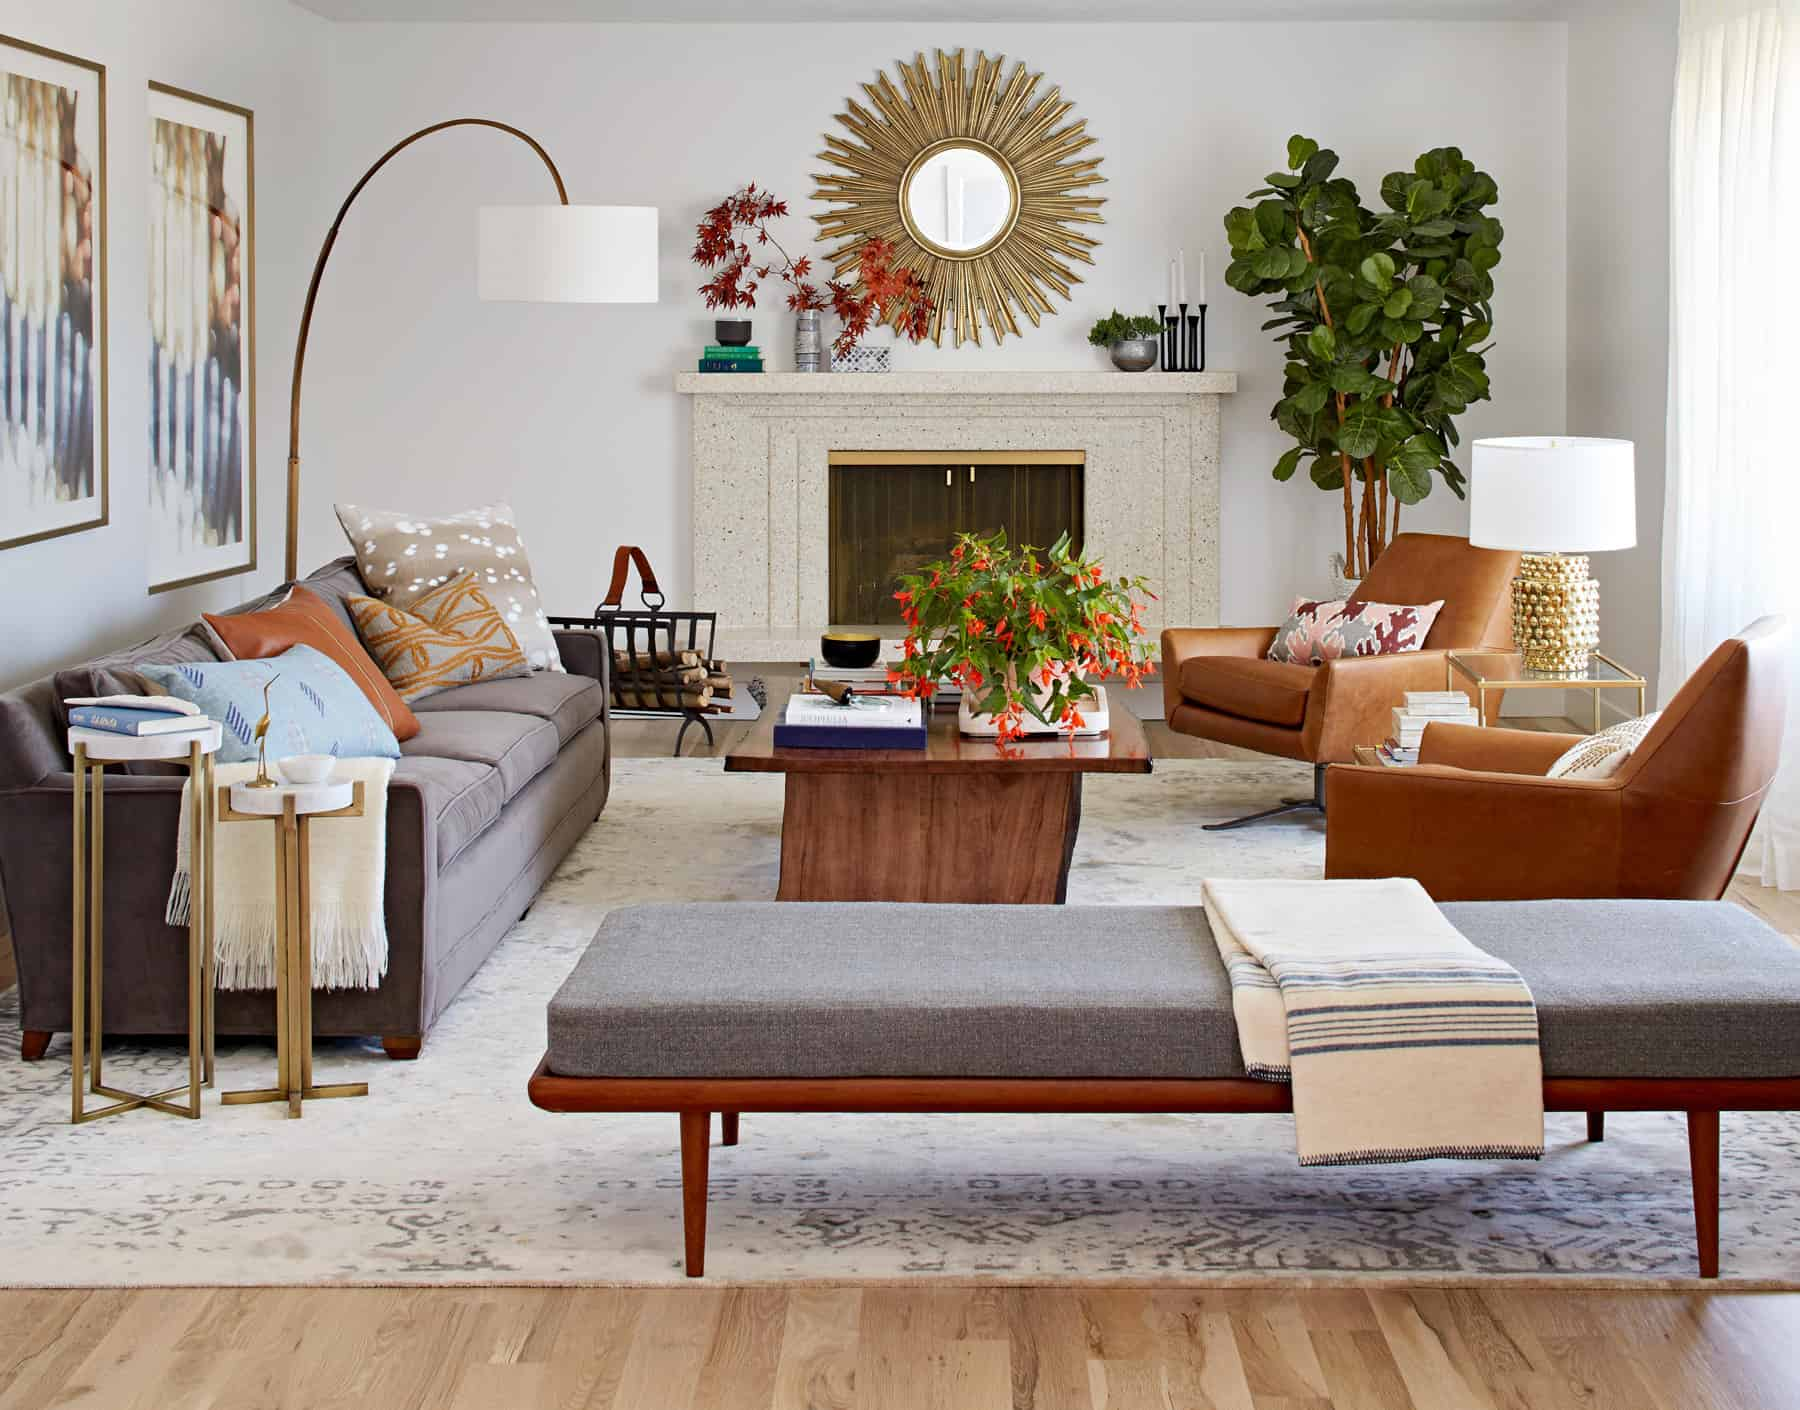 Living Room Trends 2021 12 Fresh and Unique Ideas To Try In 2021